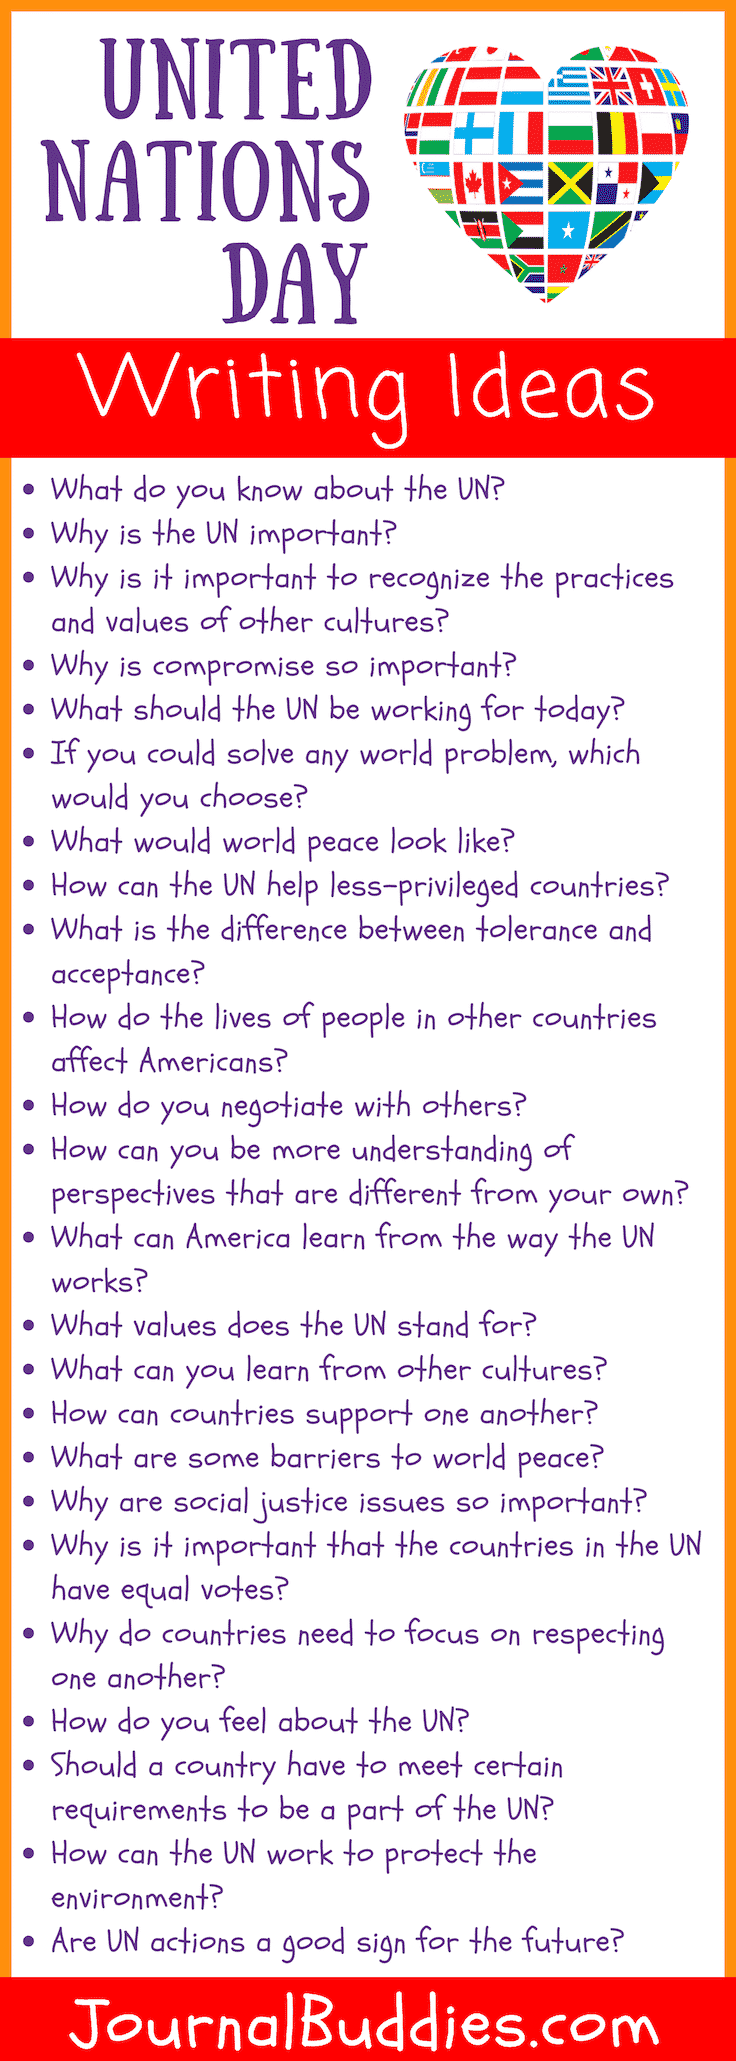 United Nations Day Writing Ideas and Journal Prompts